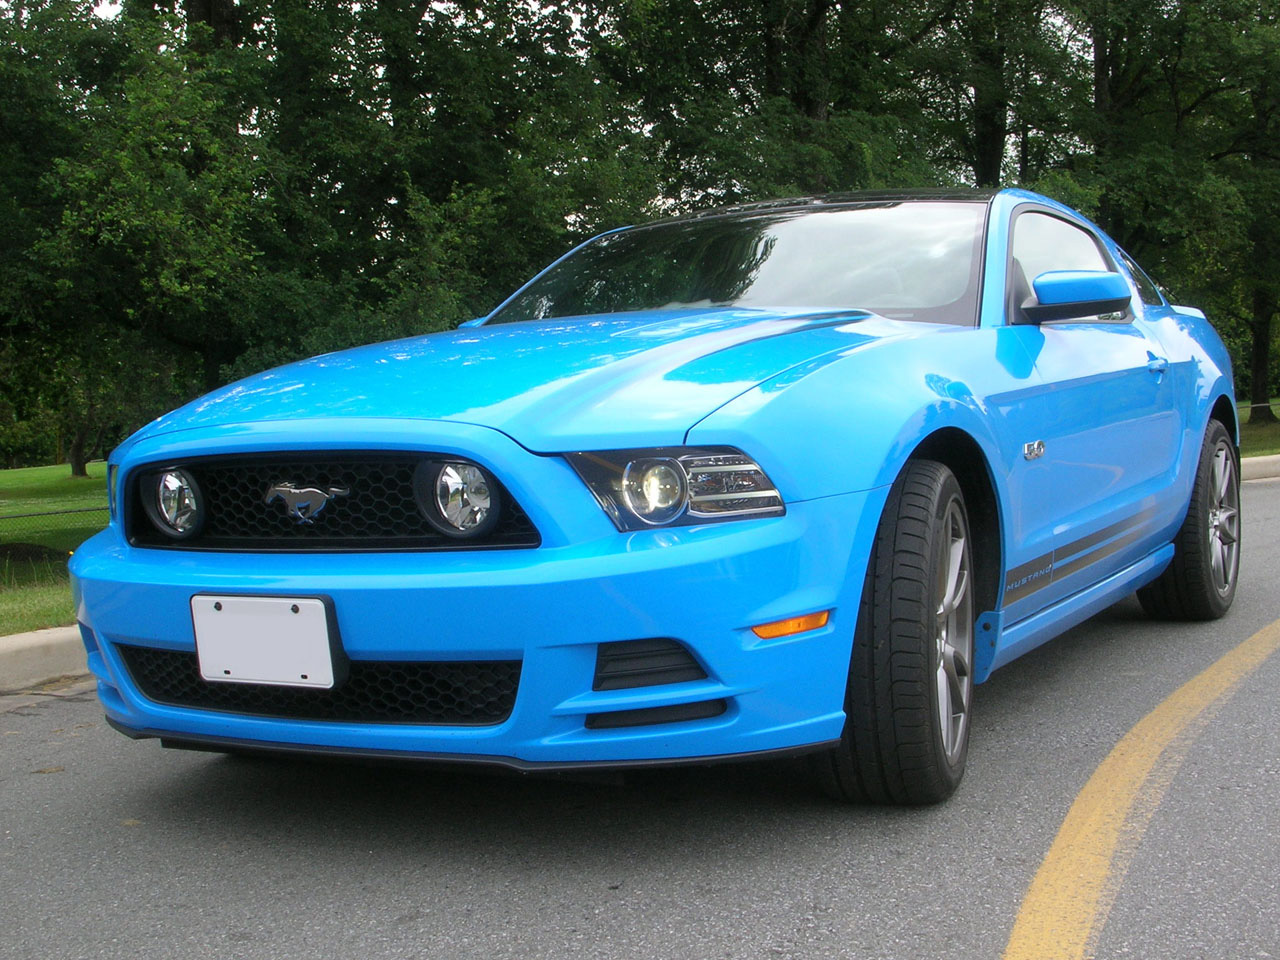 2014 Ford Mustang Gt Road Test Review Carcostcanada